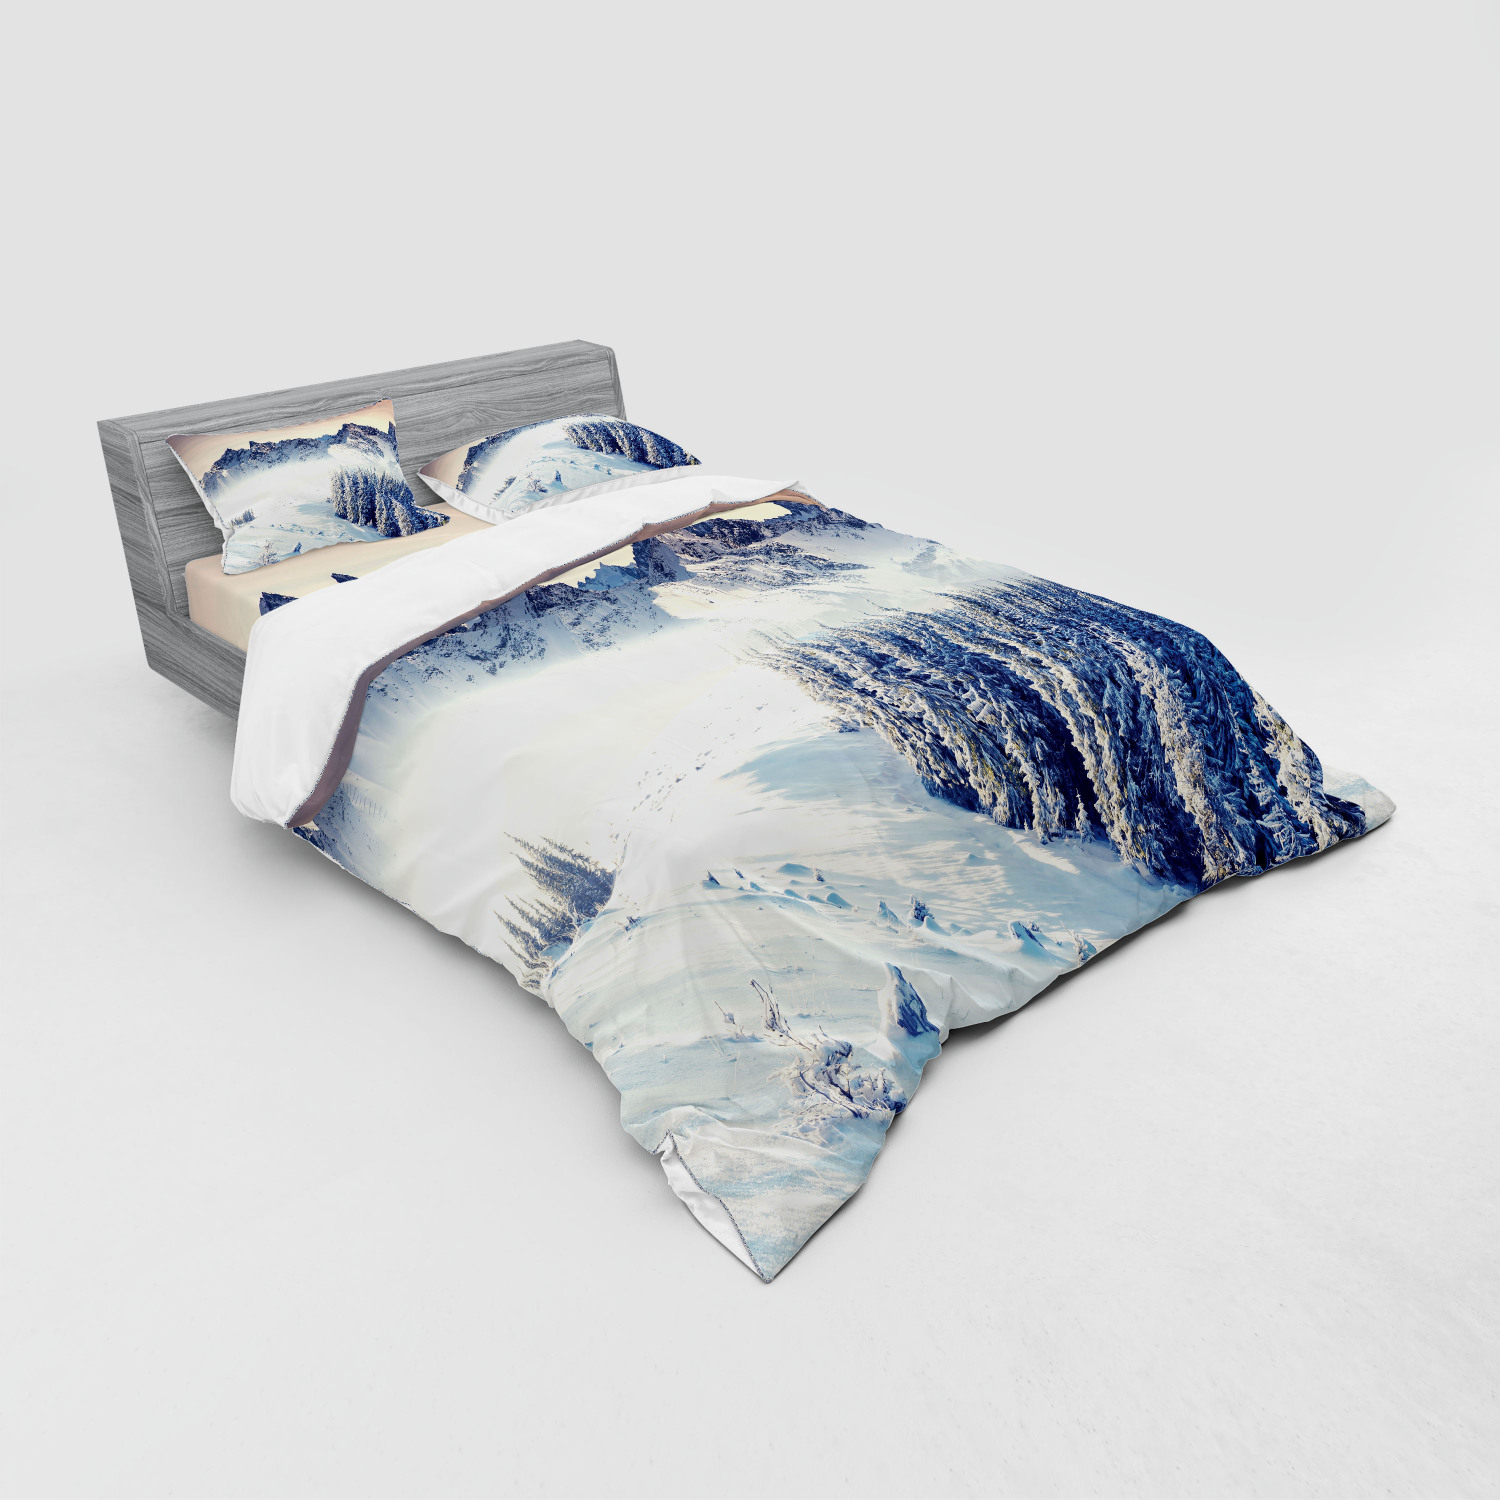 thumbnail 183 - Ambesonne Black White Art Bedding Set Duvet Cover Sham Fitted Sheet in 3 Sizes